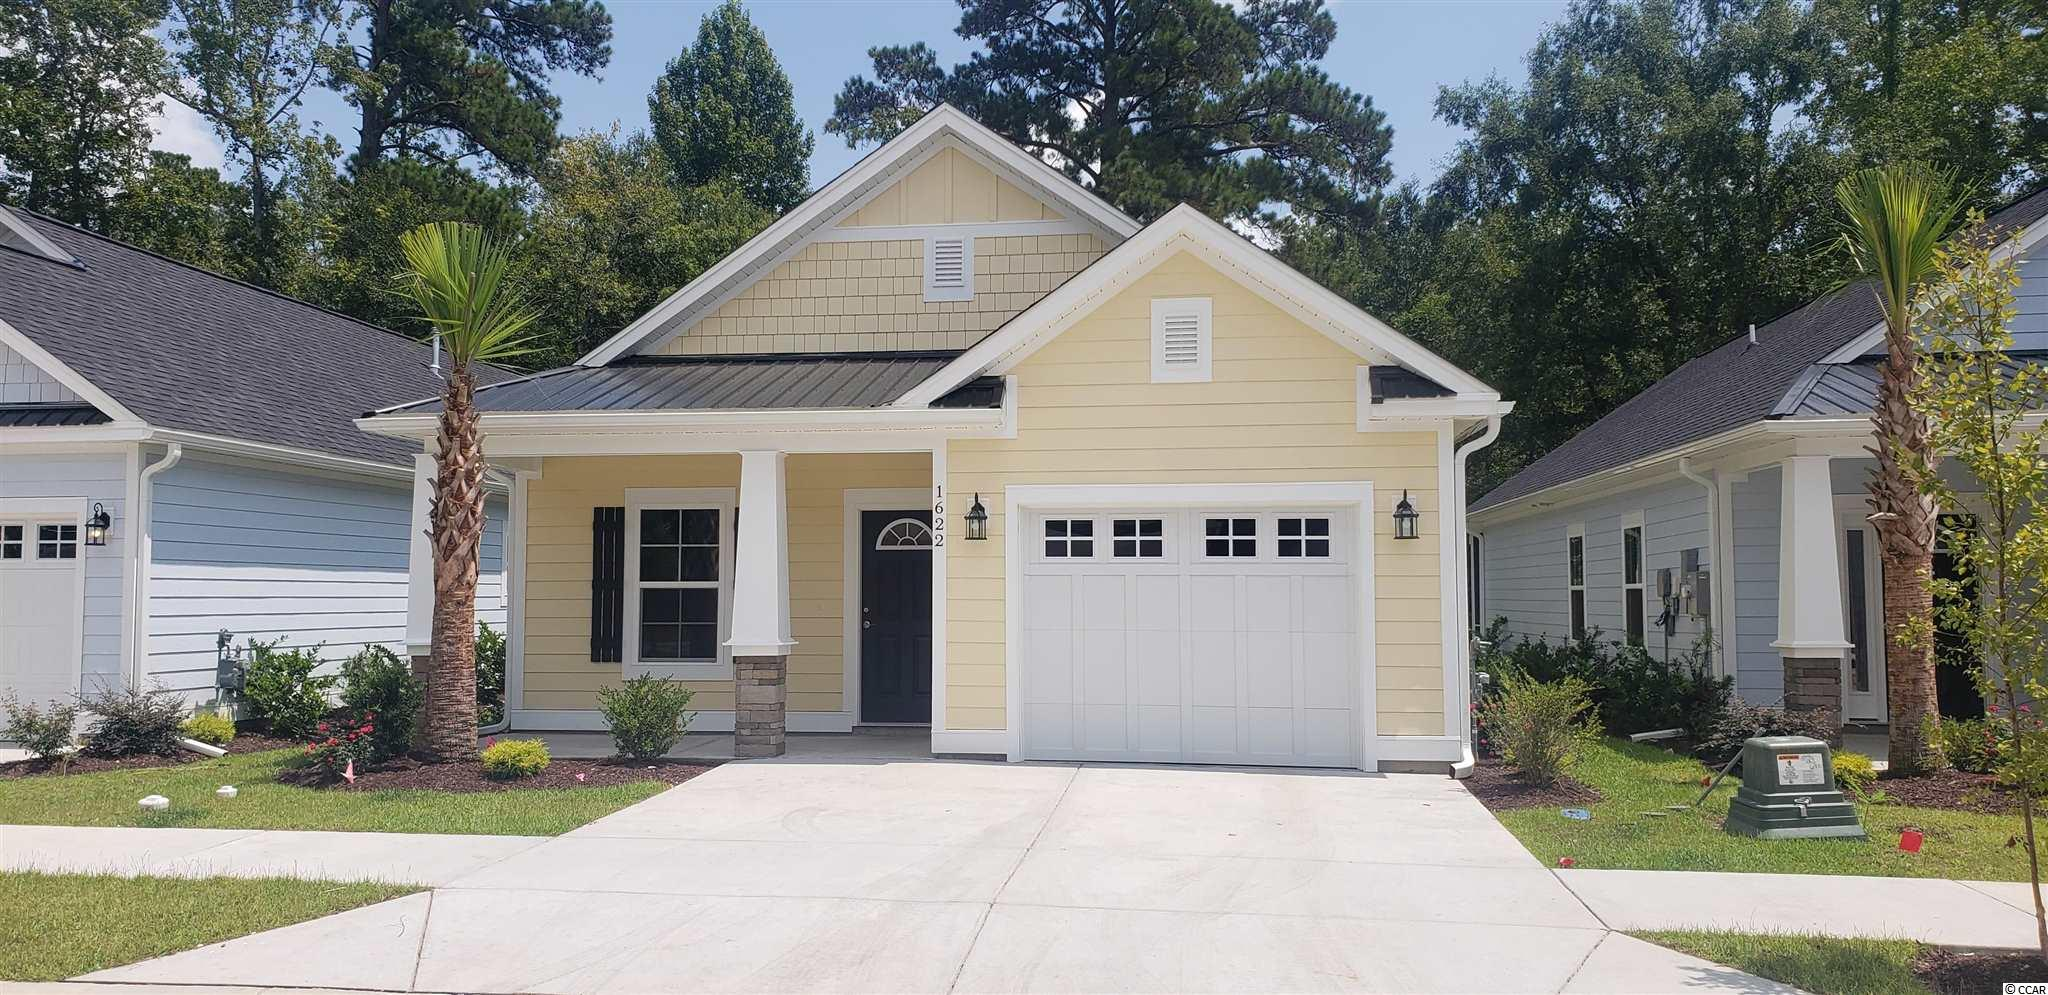 For those seeking the best of both worlds, discover the historical quaint town of Conway approximately 20 miles from the beach and excitement. Located just off 501 behind a scenic lake, this master planned community features a clubhouse and swimming pool, well-lit streets, sidewalks and beautifully designed streetscapes with lush landscaping. There will be 68 homes in the development at completionThe finely detailed Osprey Floor plan features a low country cottage design with 3 bedrooms, 2 baths, 1384 HSF and an oversized 1-car garage. It comes with a gas range, on demand gas water heater, gas heat, brick accents and bright coastal color palettes. This park-like setting is ideal for early morning jogs or afternoon strolls and the front porches are perfect for that fine old lost art of visiting with neighbors. Come discover why Carsen's Ferry is the perfect fit for you and your family.